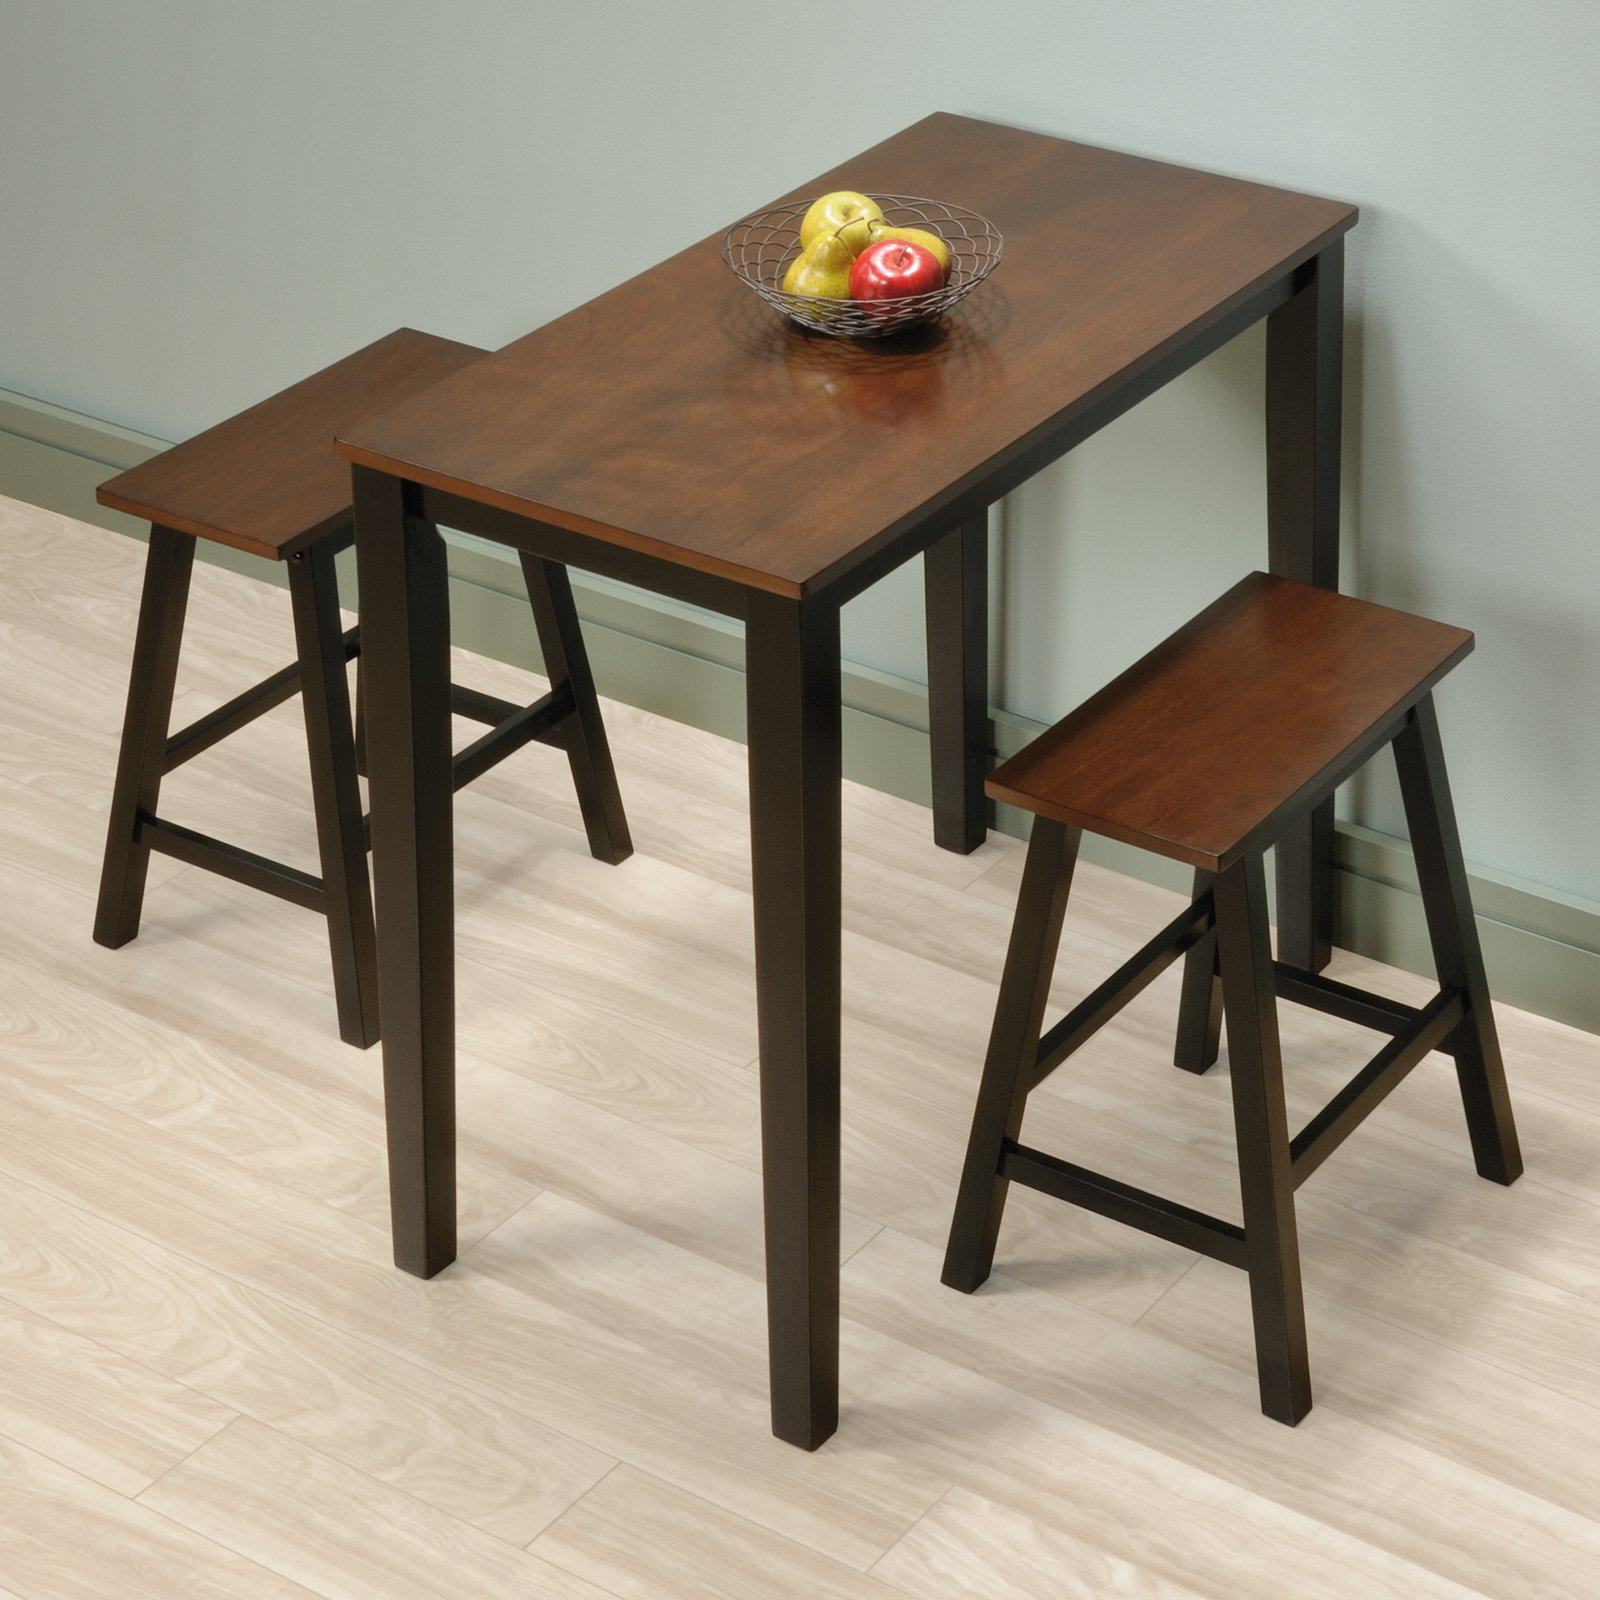 Winsome 3 Piece Counter Height Dining Sets With Favorite Sauder Beginnings 3 Piece Counter Height Dining Set, Cherry Finish (View 19 of 25)